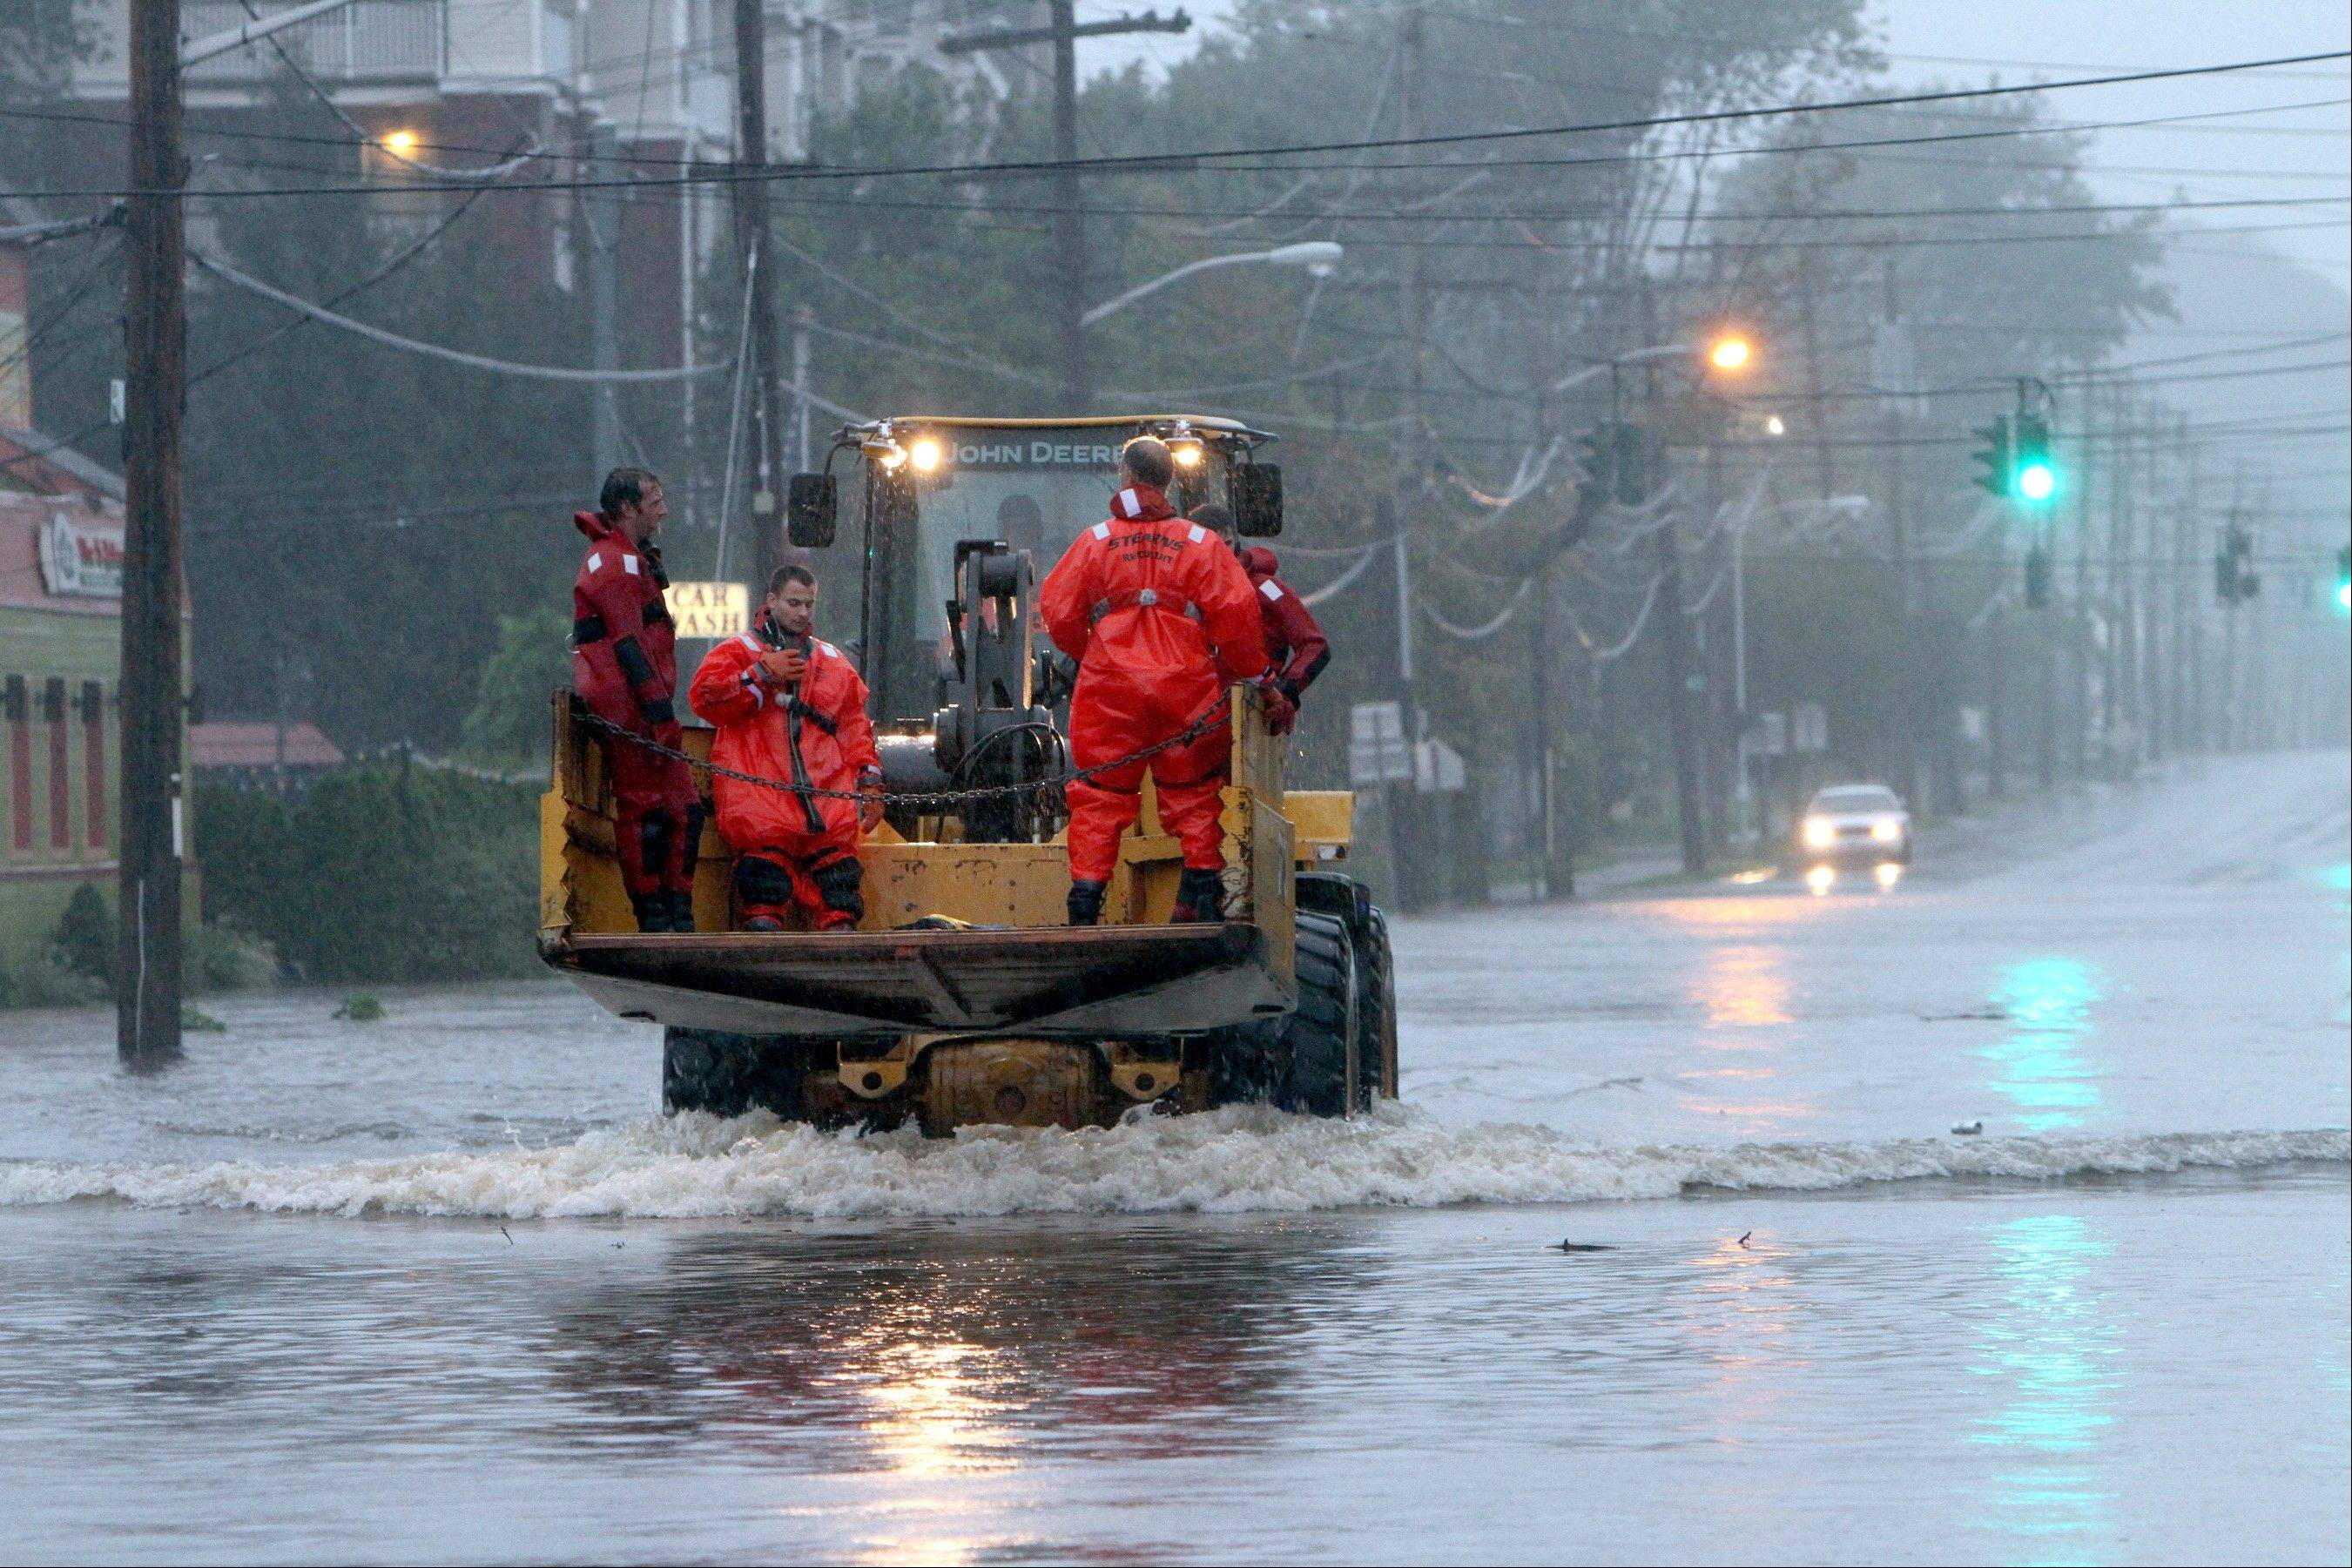 Village of Mamaroneck, N.Y. rescue swimmers ride on the front of a pay-loader en-route to their next mission during Hurricane Irene in Mamaroneck during Hurricane Irene Sunday, Aug. 28, 2011.